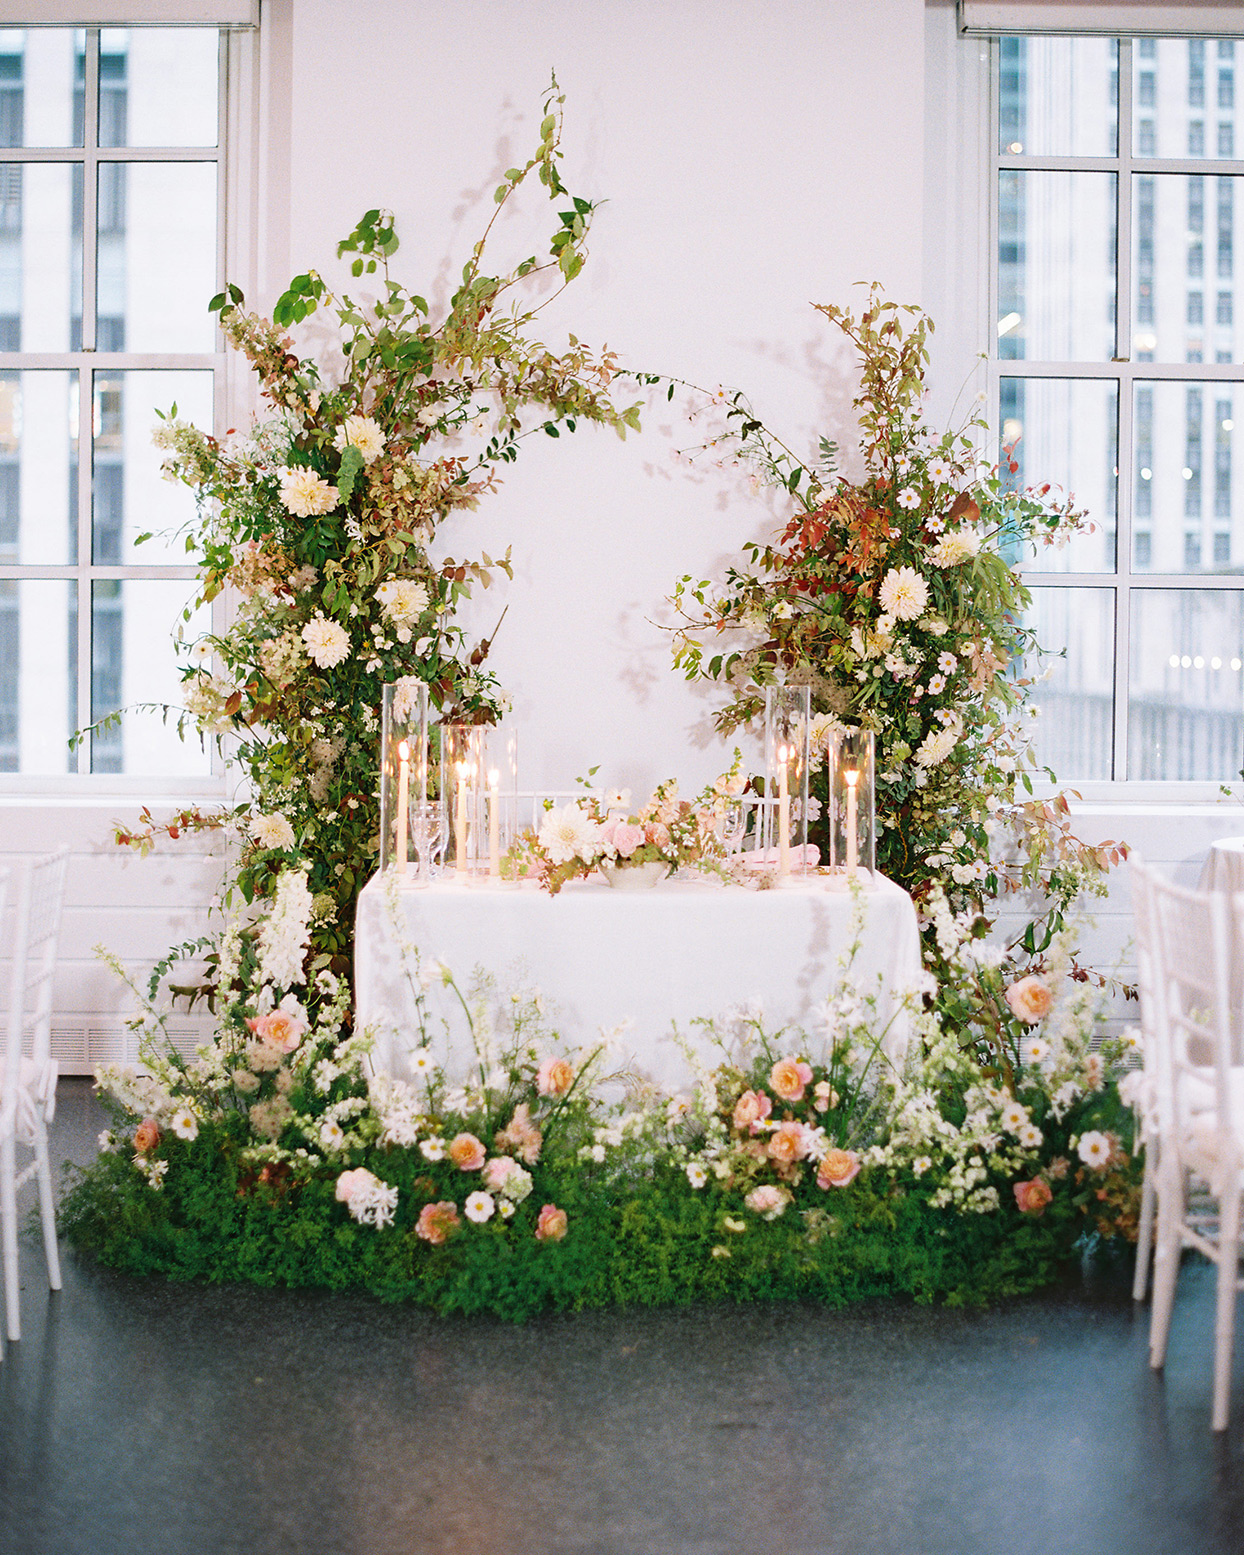 sweetheart table with floral arch and decor at reception